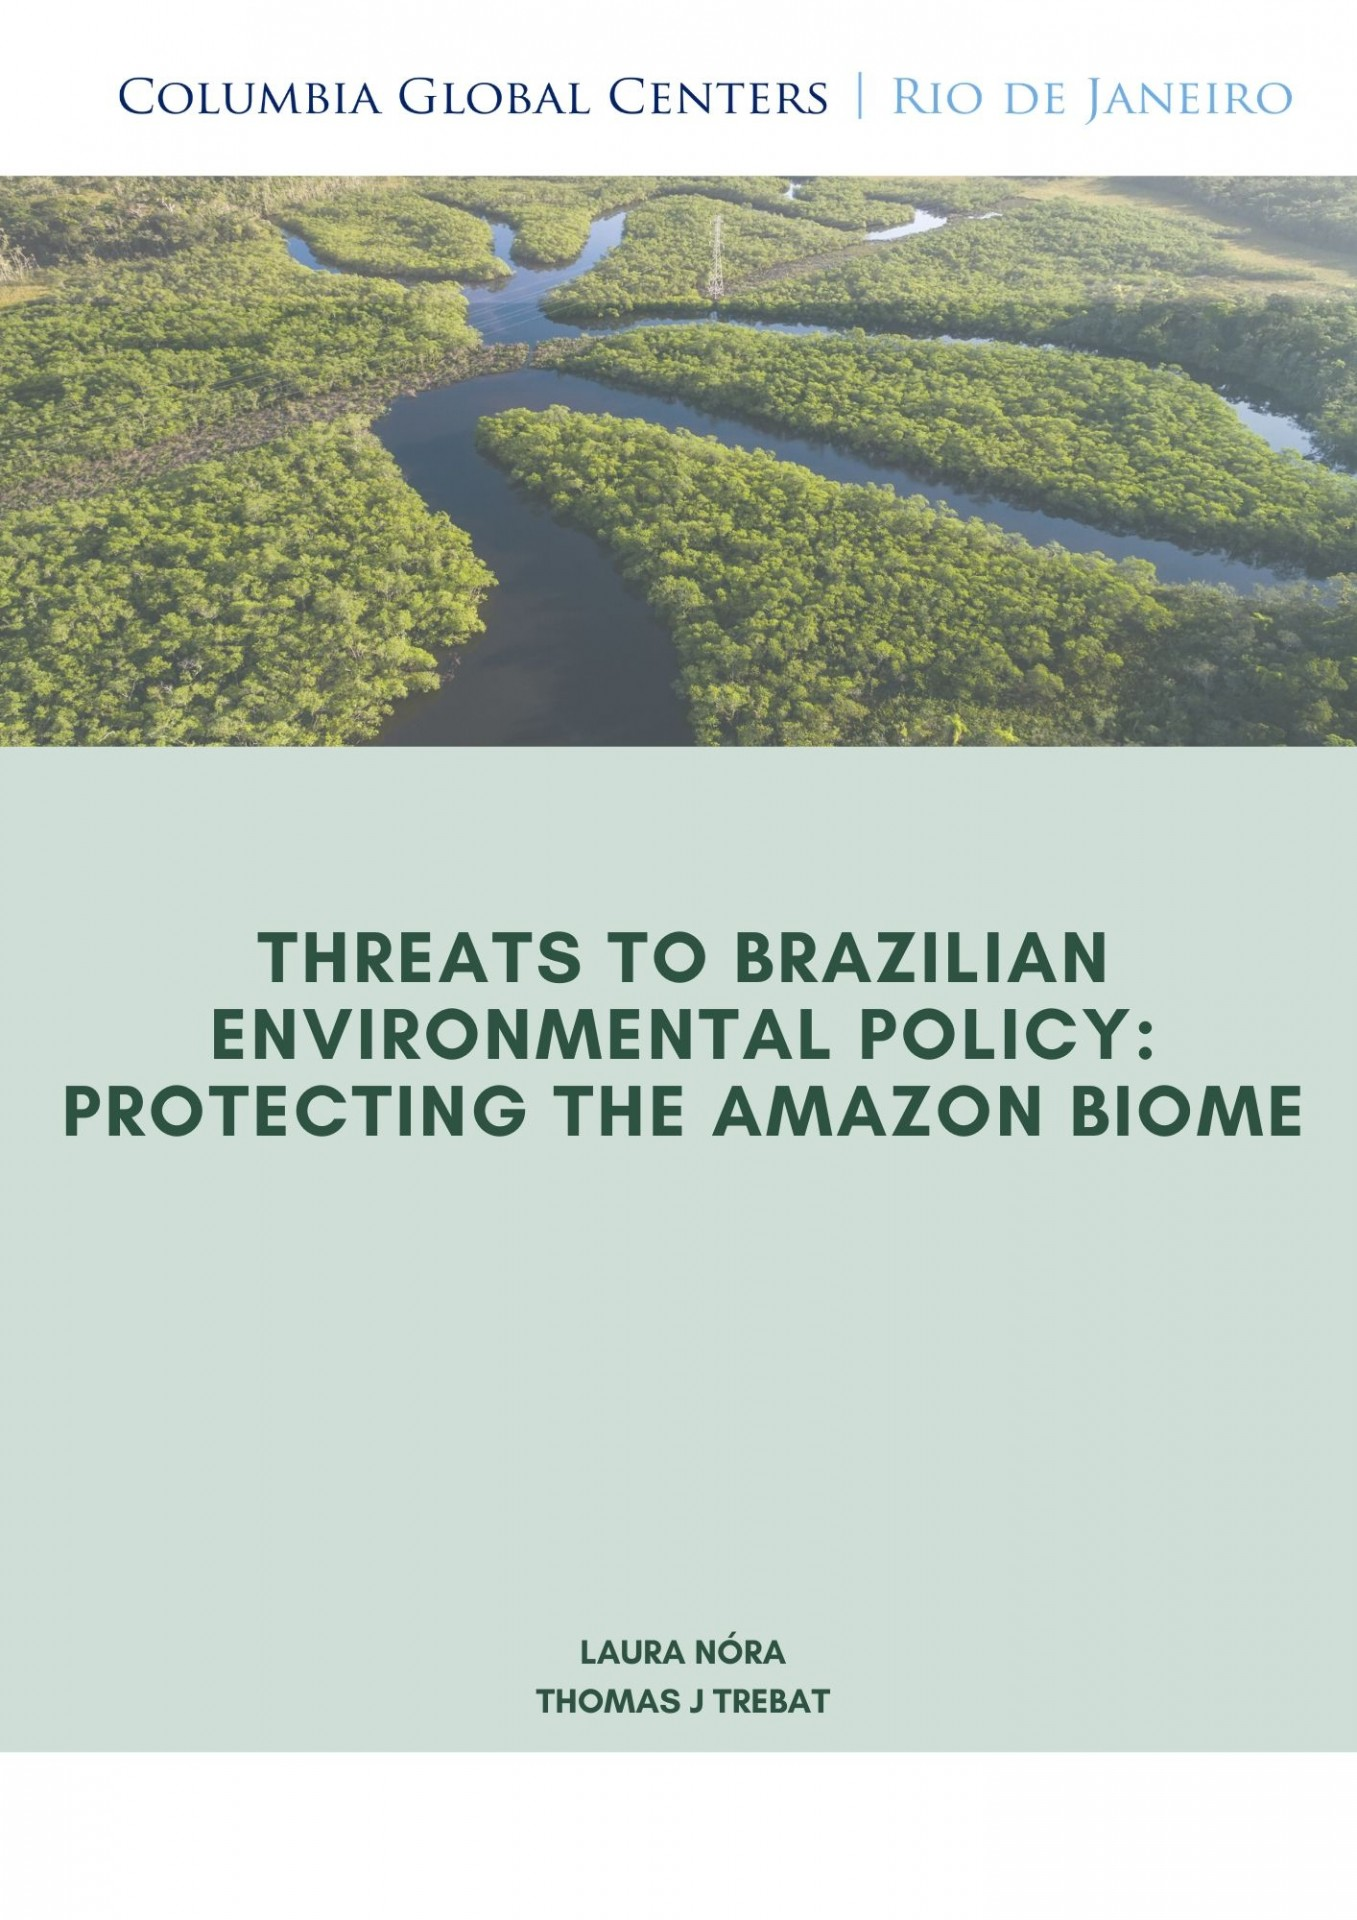 Threats to Brazilian Environmental Policy: Protecting the Amazon Biome